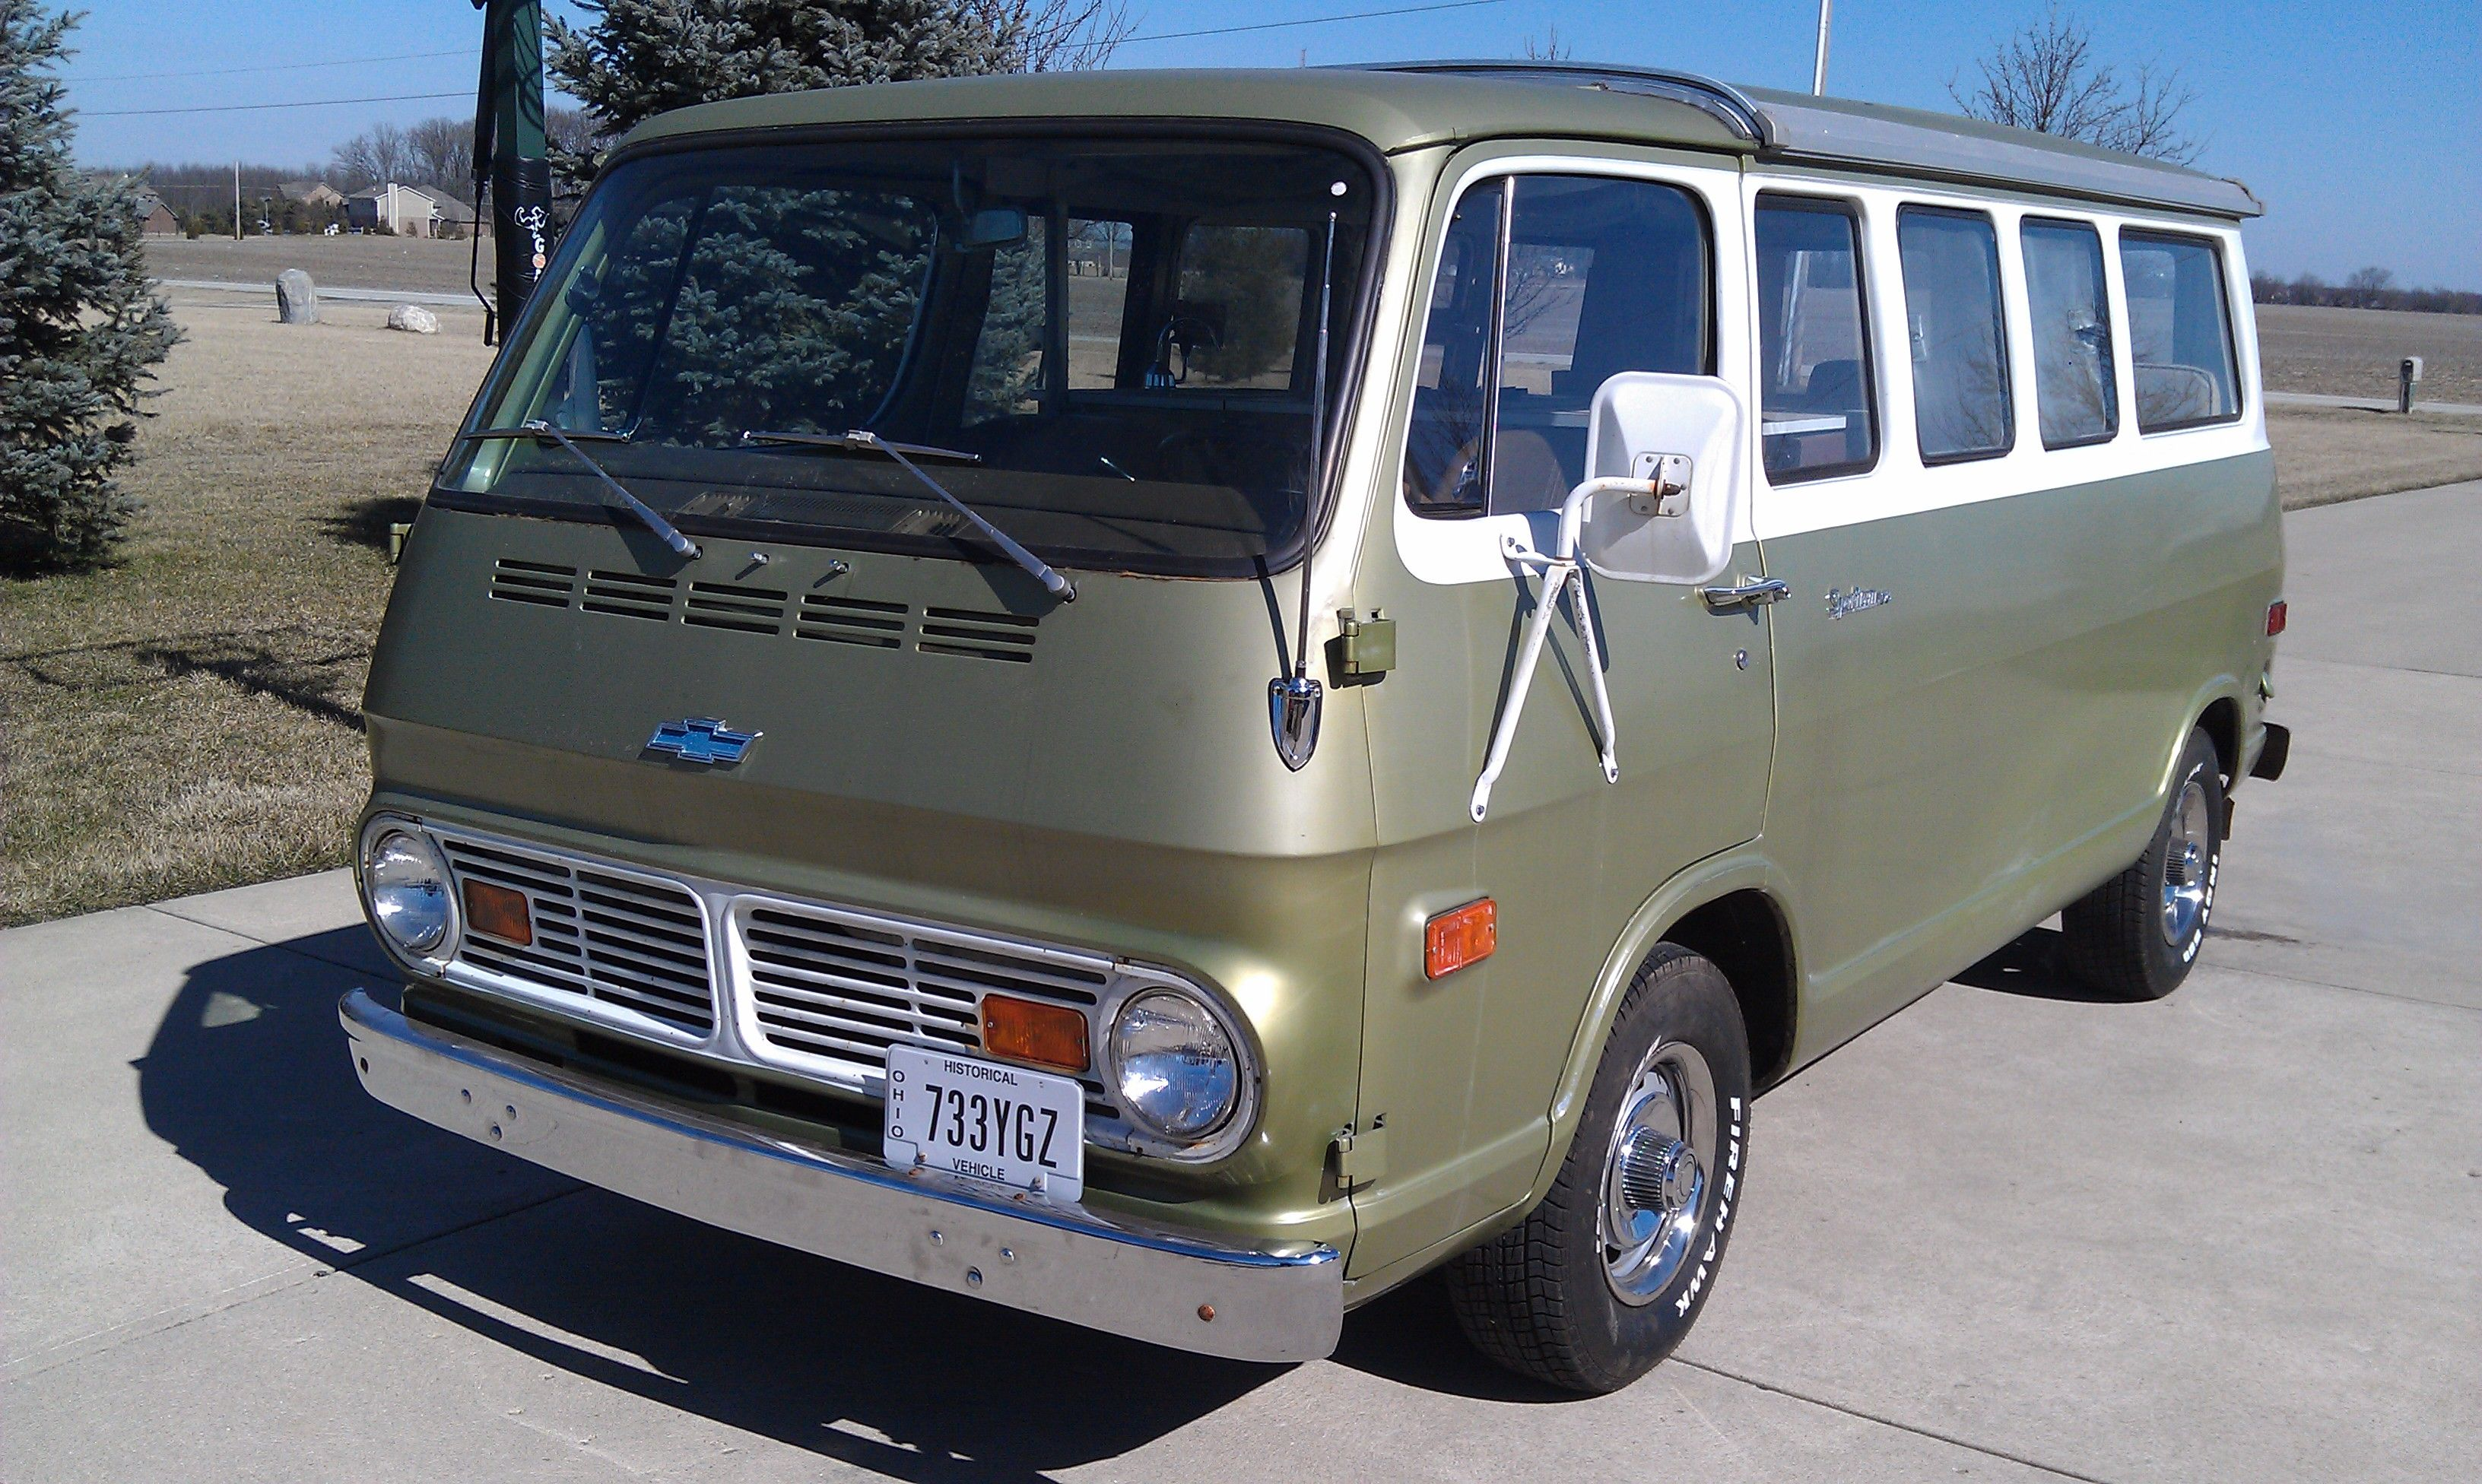 This one of a kind 69 chevrolet sportvan 108 with the travel cruiser camper conversion is a rare find in very good condition that was purchased from the